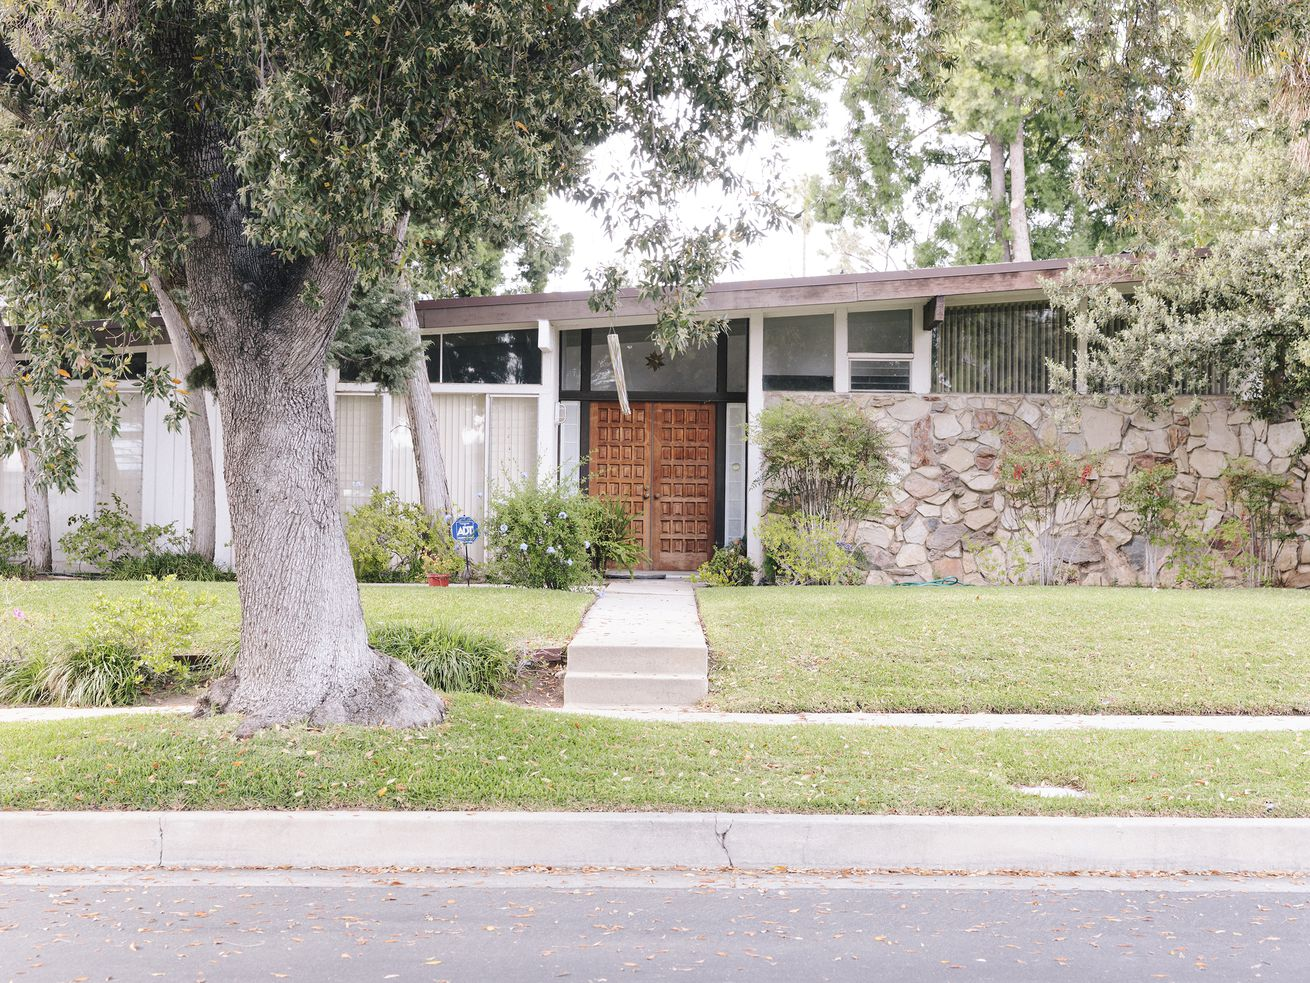 May's median home price in the San Fernando Valley was $708,000.